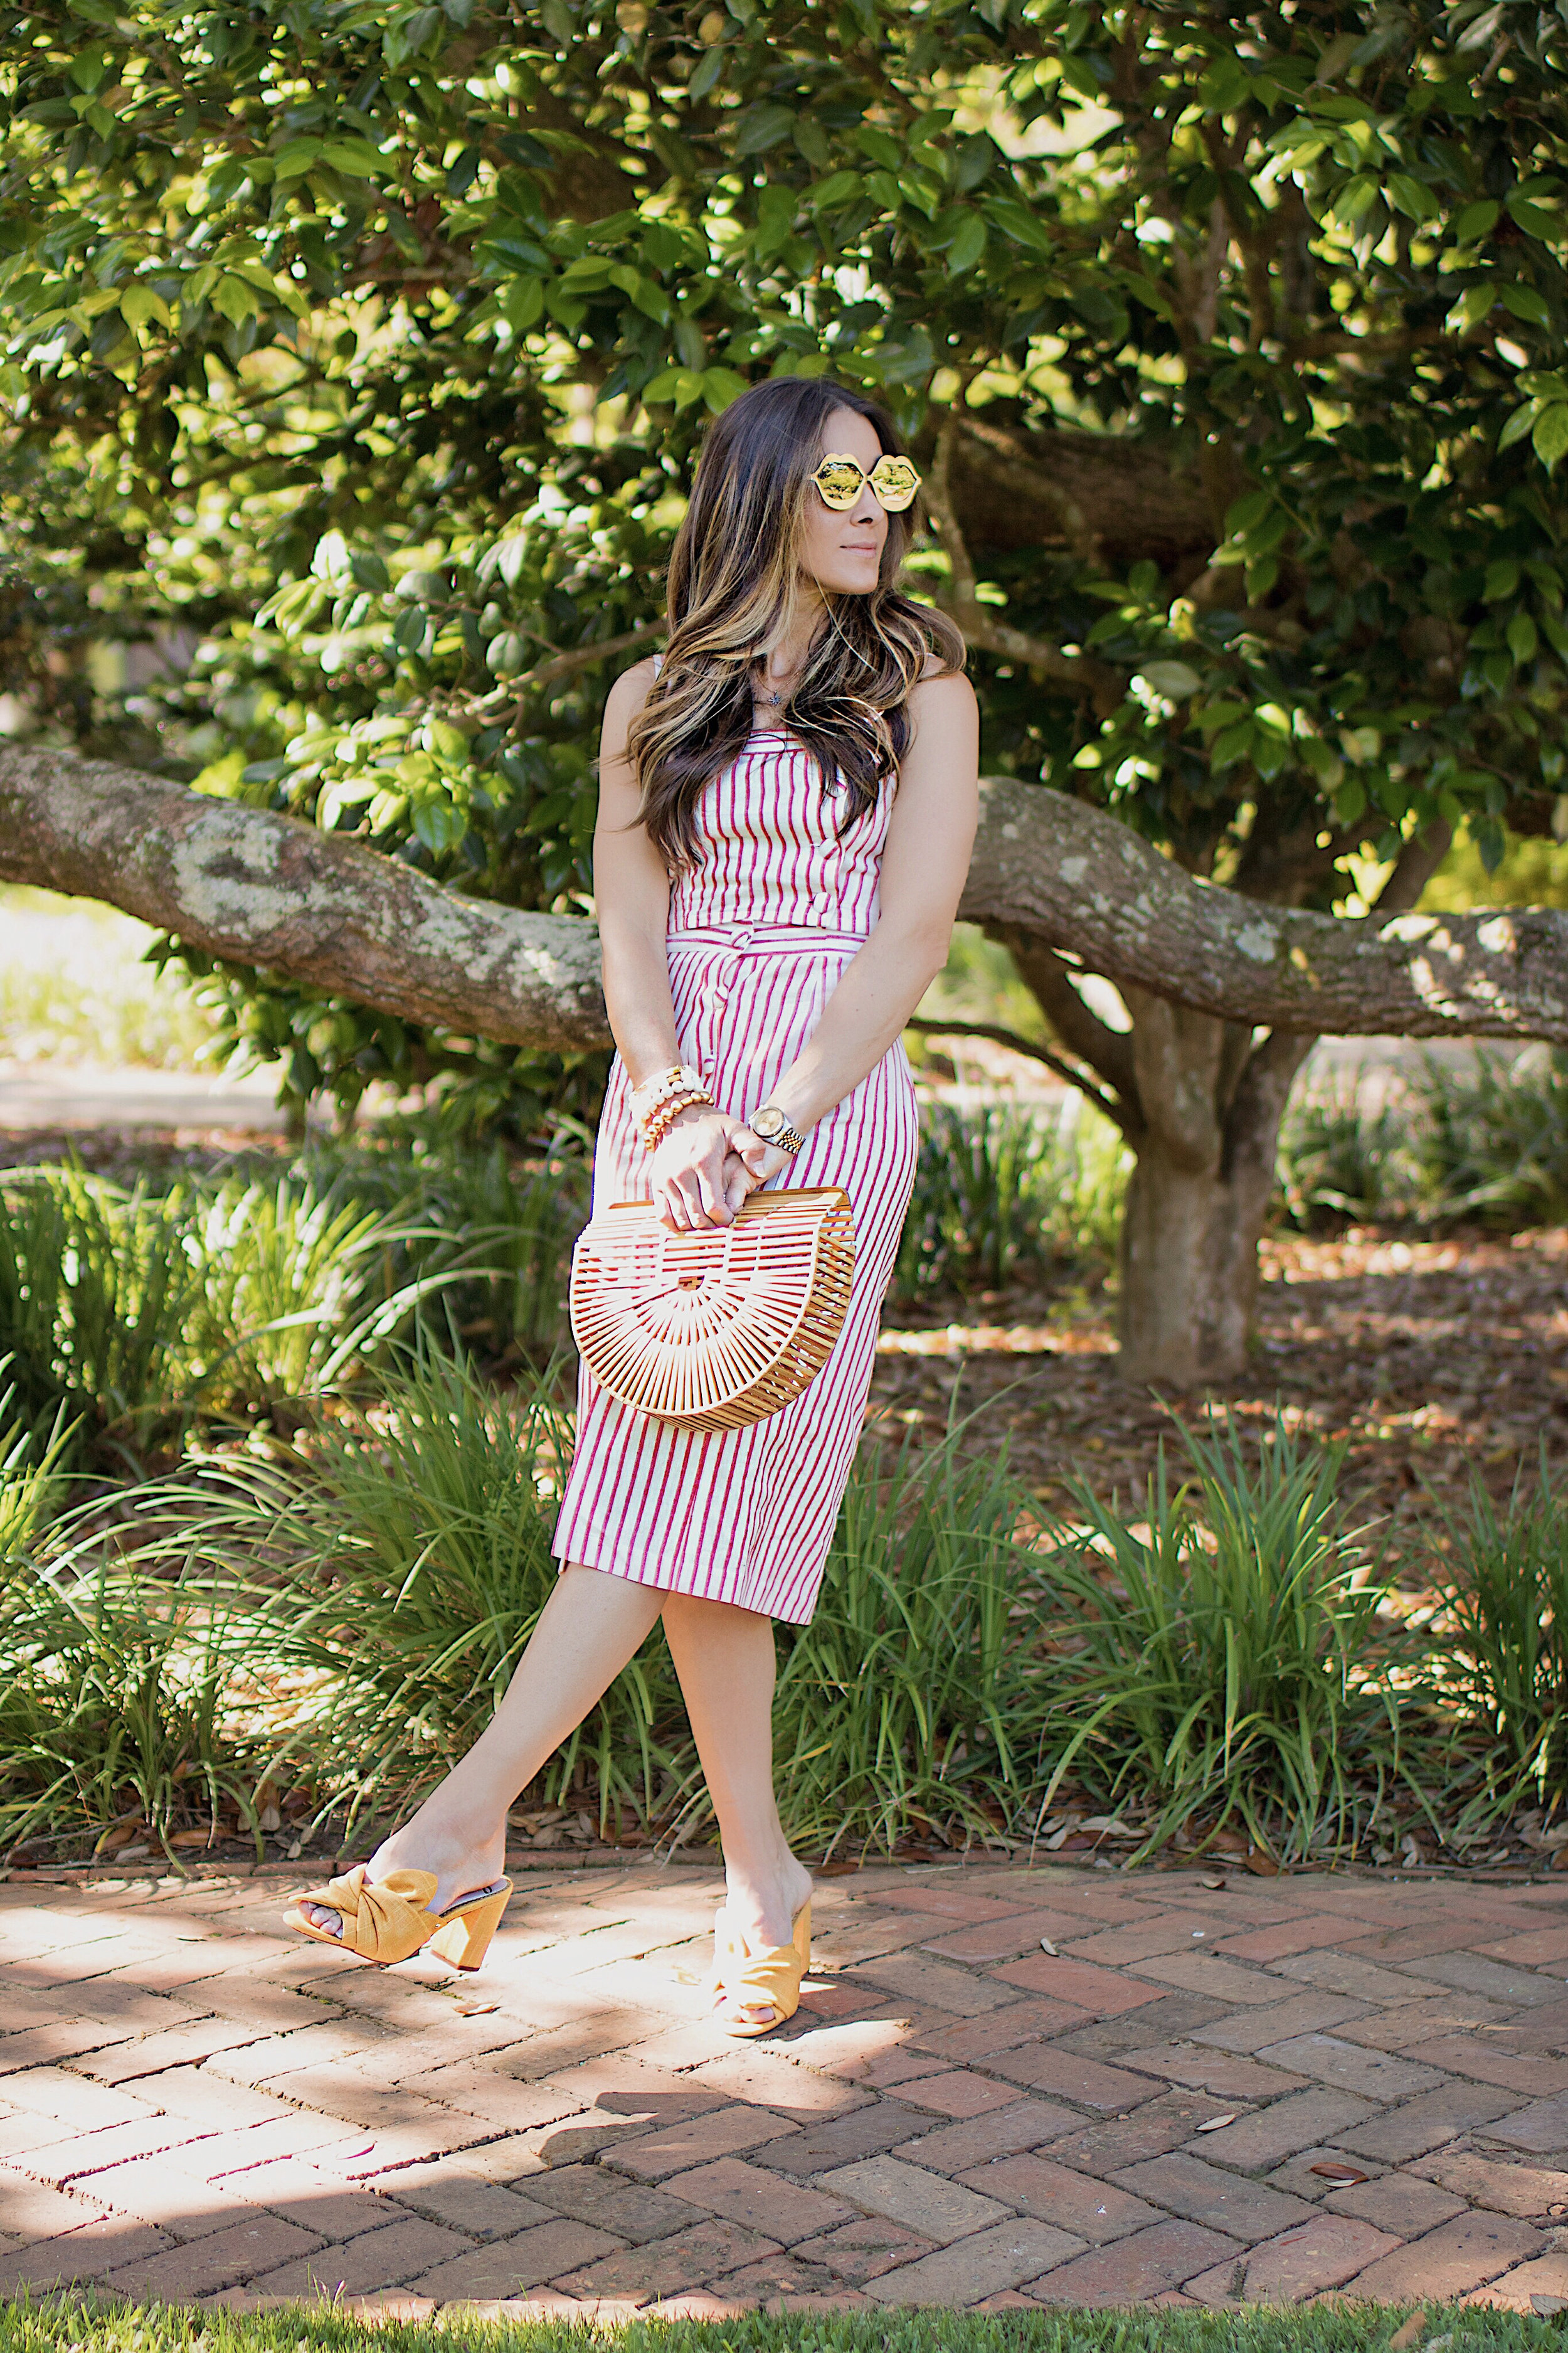 SKIRT -  FOREVER21  | TOP -  FOREVER21  | SHOES - SAM EDELMAN  HERE  AND  HERE  | BAG -  HERE | SUNGLASSES -  TARGET  |WATCH - ROLEX -  HERE  AND SIMILAR  HERE  | BRACELET STACK -  SPROUTS DESIGNS  |LIPSTICK -  NARS